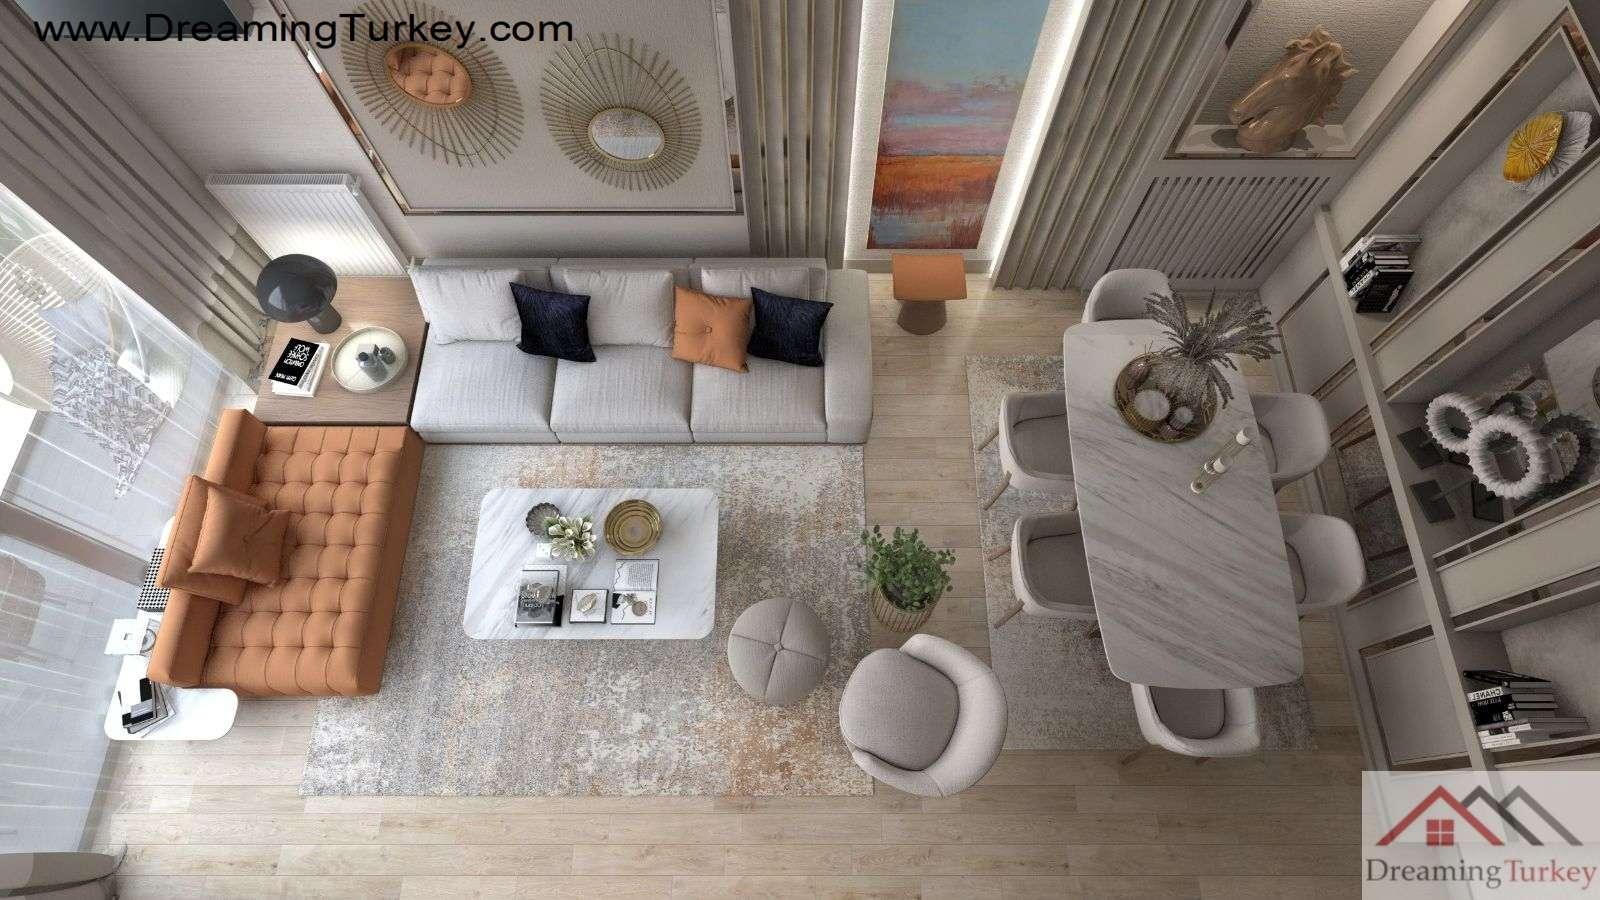 6-Bedroom Duplex with 2 Living Rooms Near the Sea in Istanbul